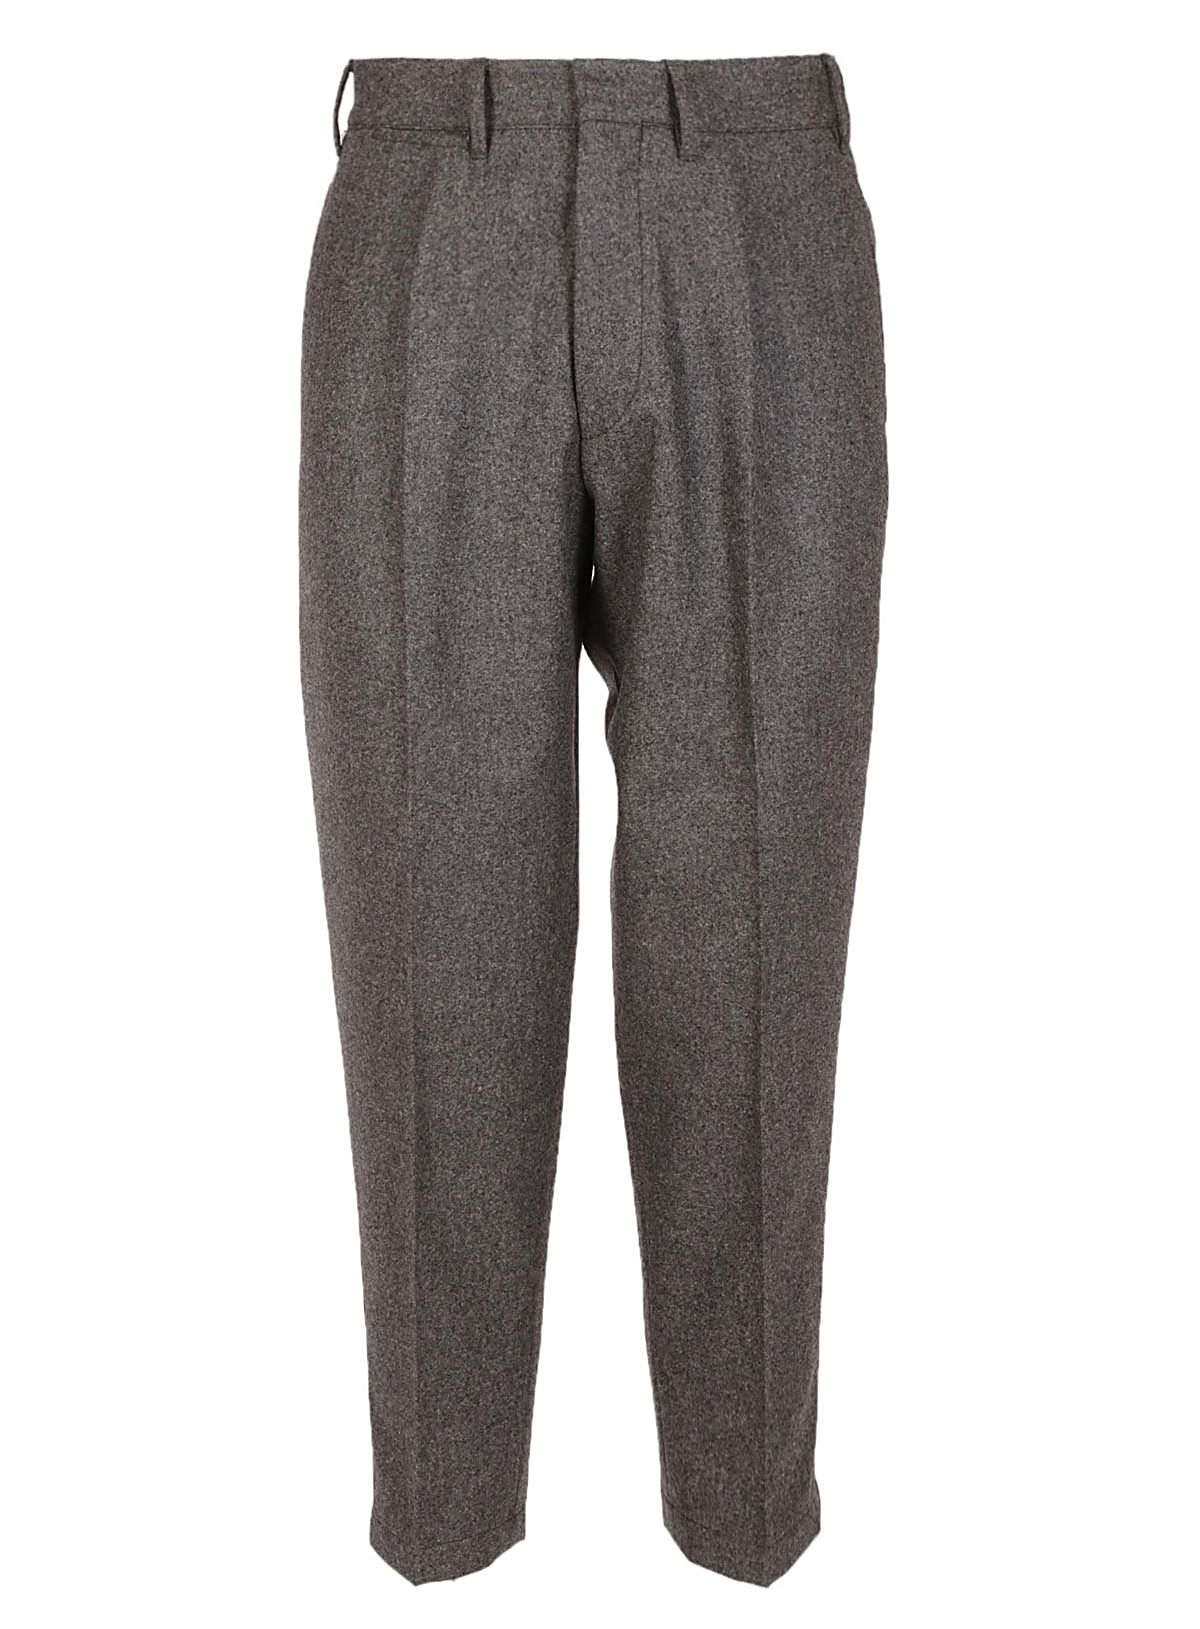 The Gigi Classic Cropped Trousers